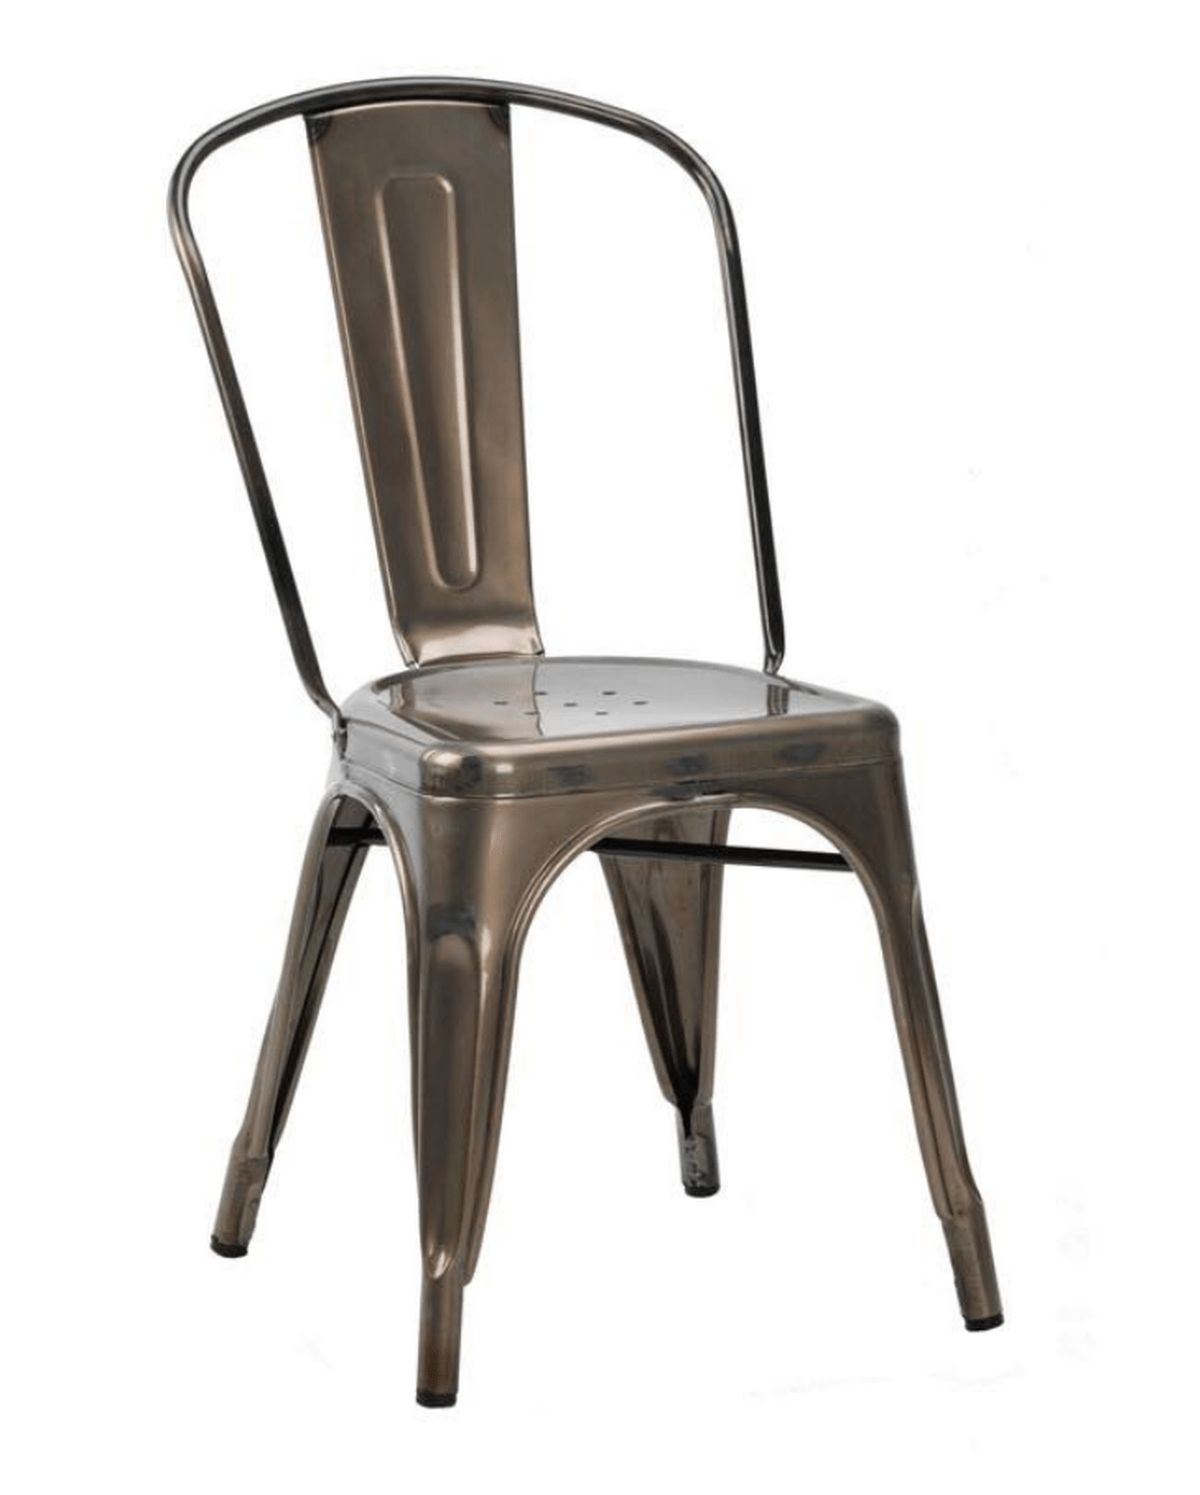 Cafe Chairs For Sale Secondhand Chairs And Tables Cafe Or Bistro Chairs New